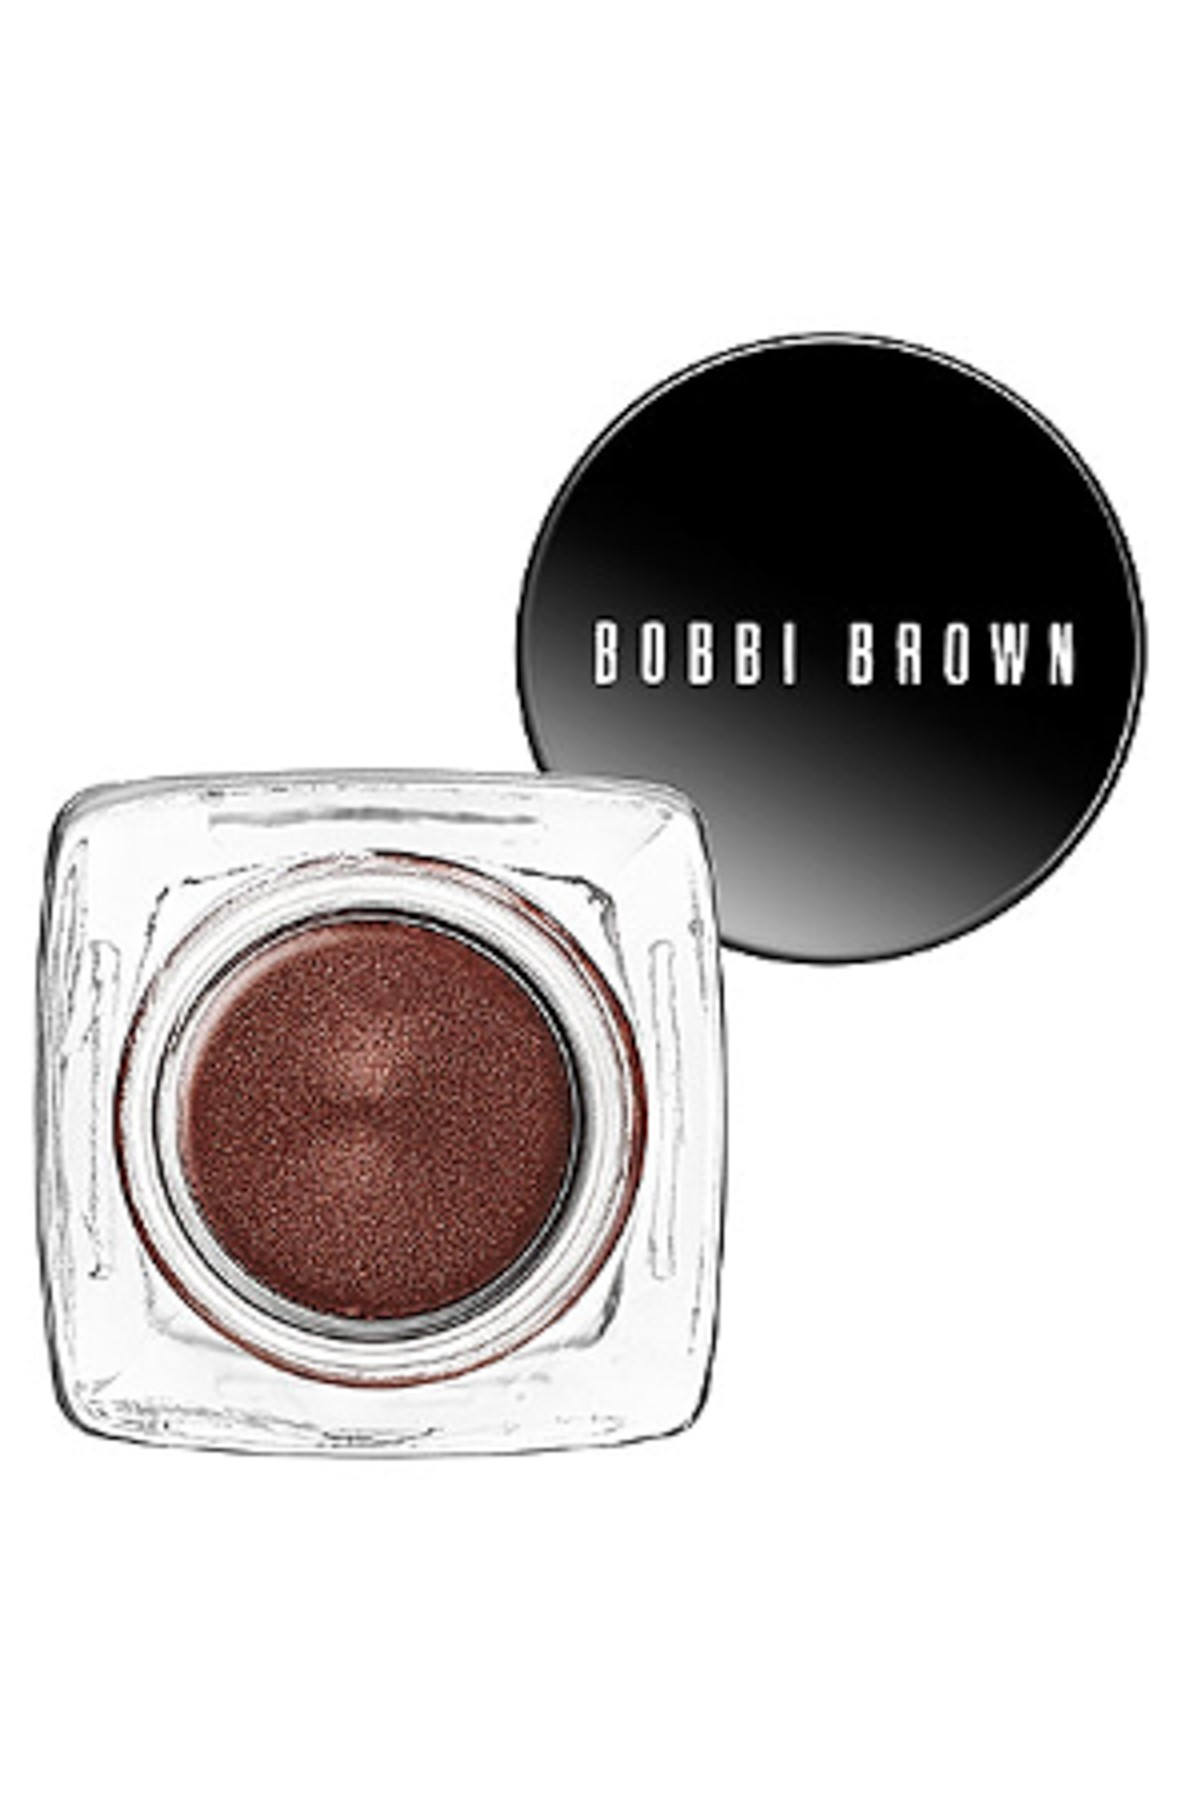 Bobbı Brown Kremsi Göz Farı – Long-wear Beach Bronze 3,5 Gr 716170052540 – 102.21 TL